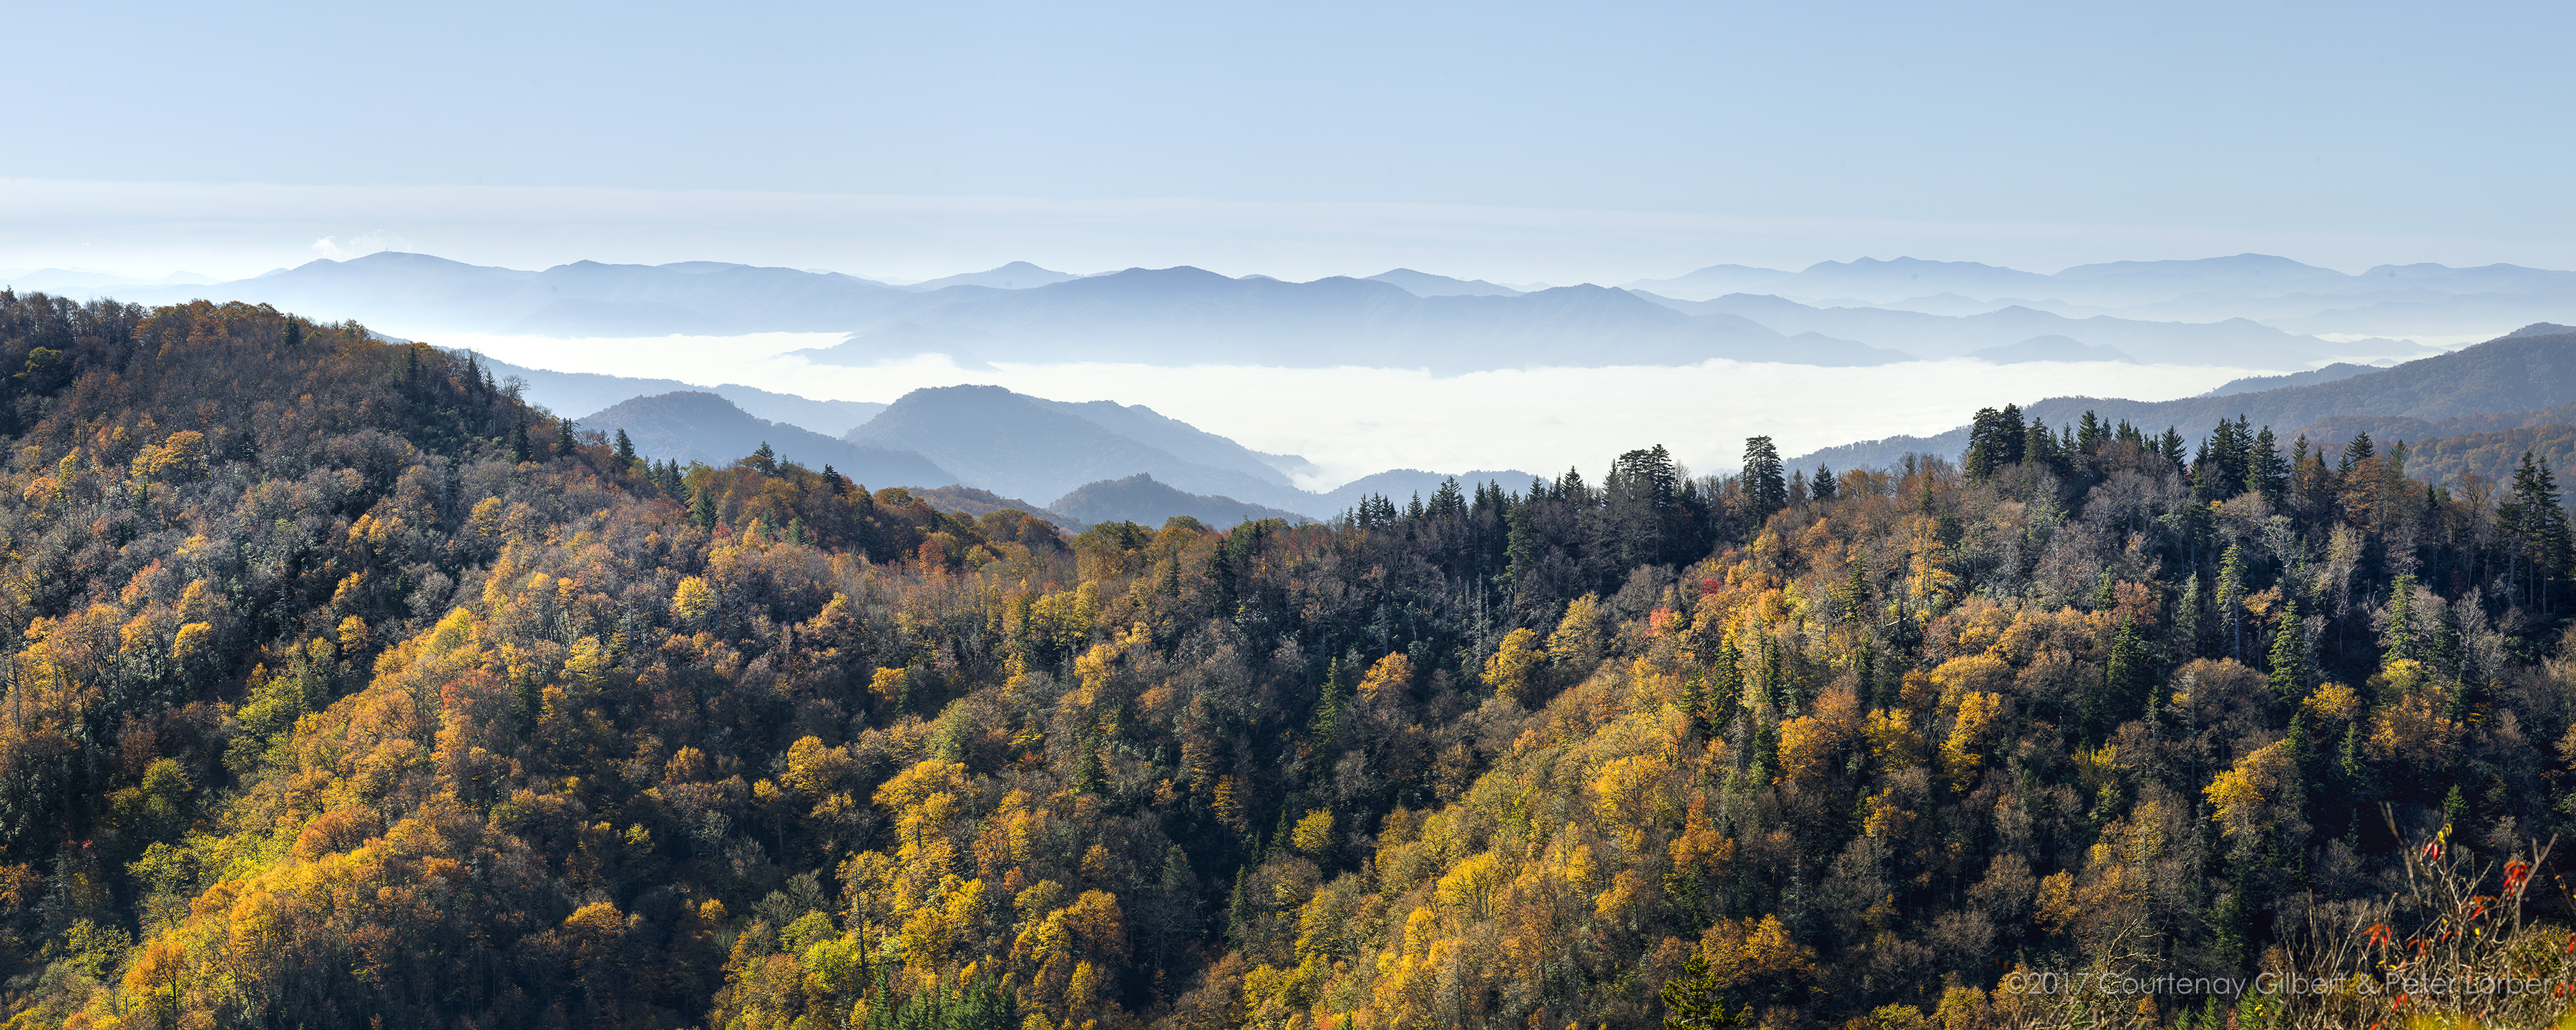 The Graet Smoky Mountains